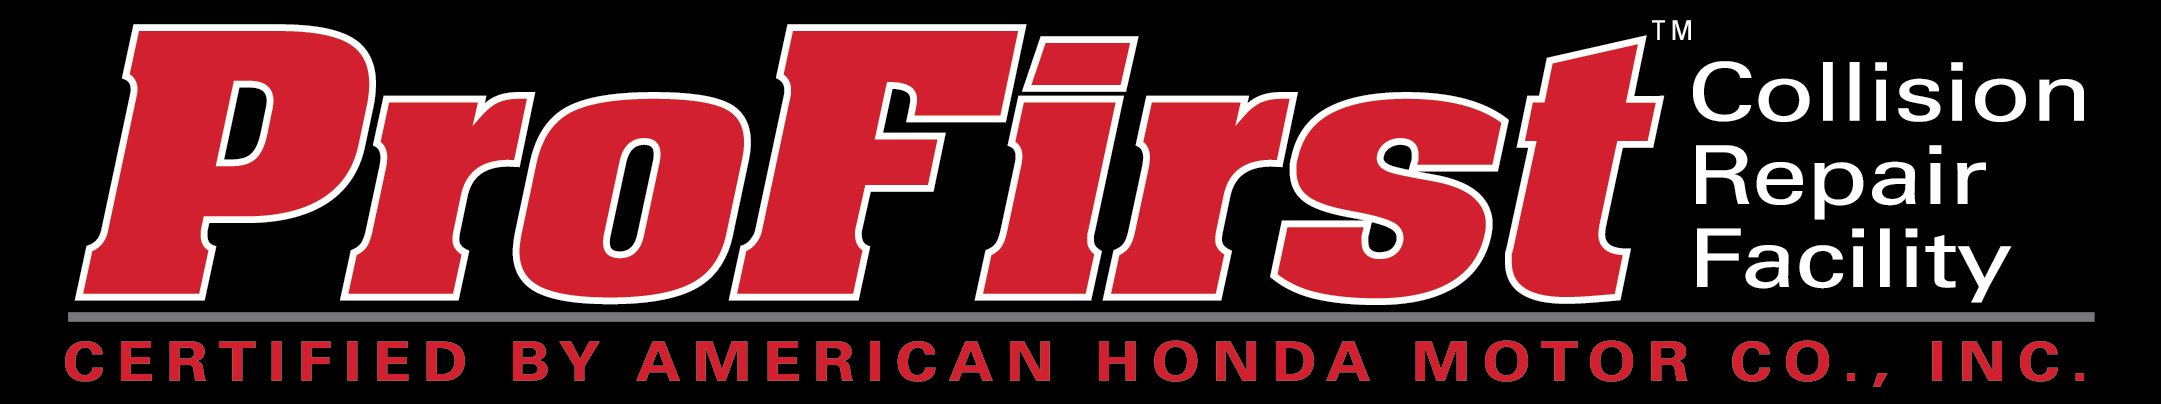 We Are A Pro First Collision Repair Shop Certified By American Honda Motor  Co. Inc To Repair Hondau0027s And Acurau0027s. Of Course We Still Work On All Makes  And ...